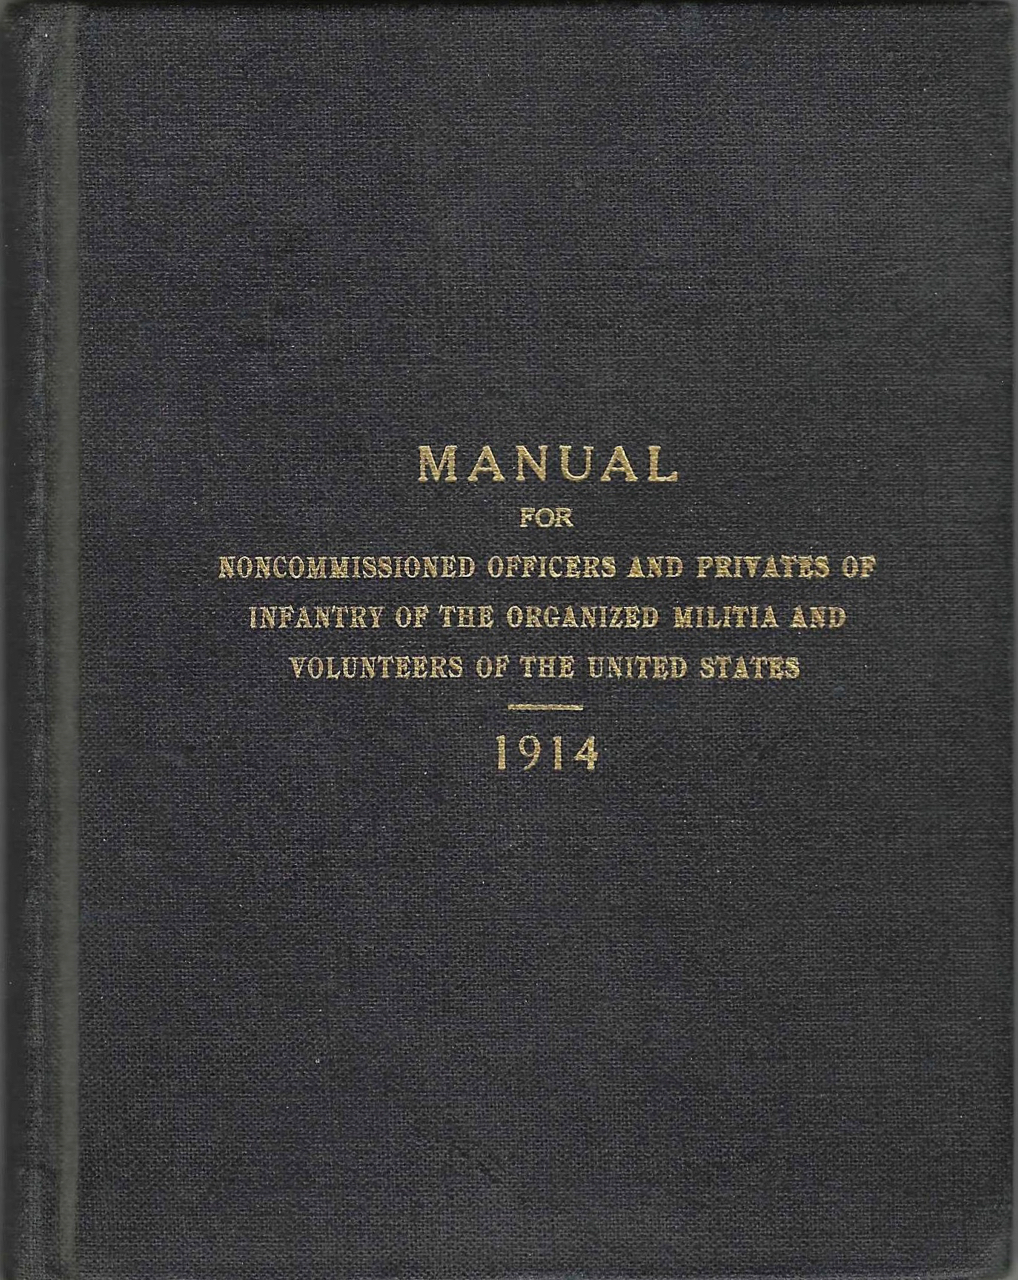 Manual for Noncommissioned Officers and Privates of Infantry of the Organized Militia and Volunteers of the United States. U S. Army Manual – Noncommissioned officers.